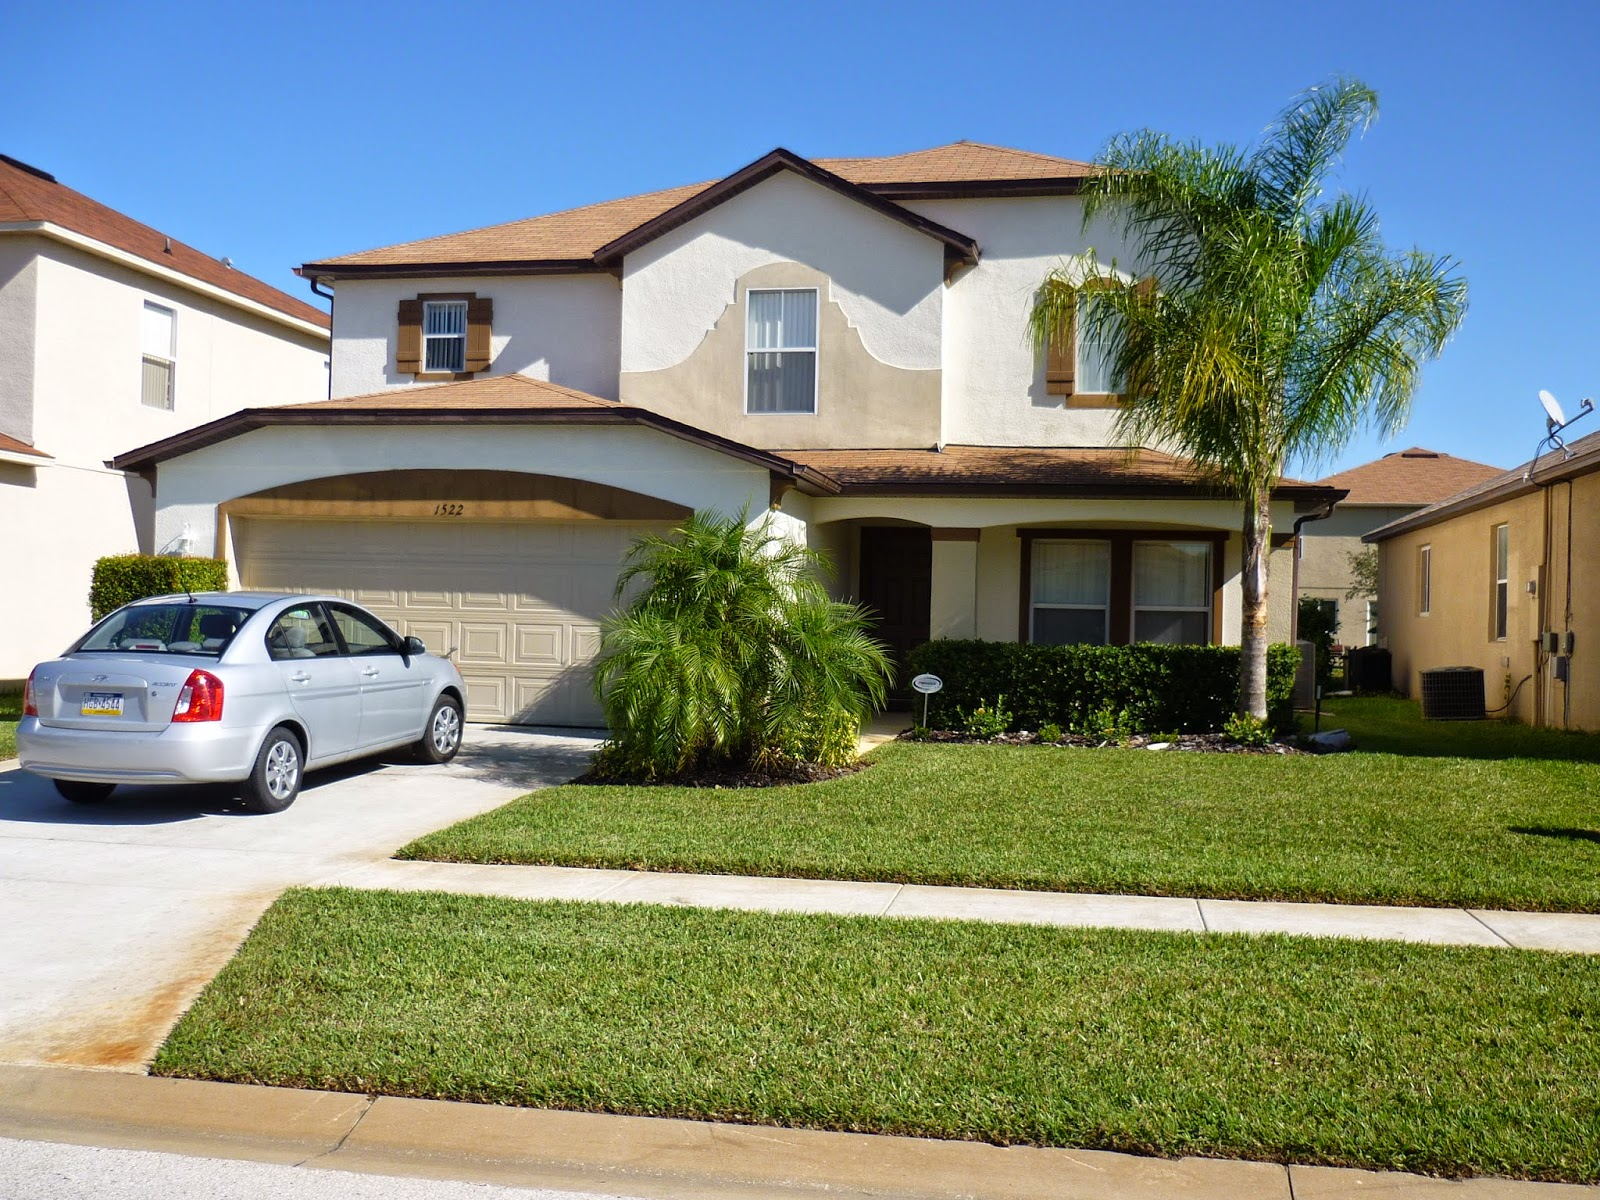 orlando vacation home rental near disney